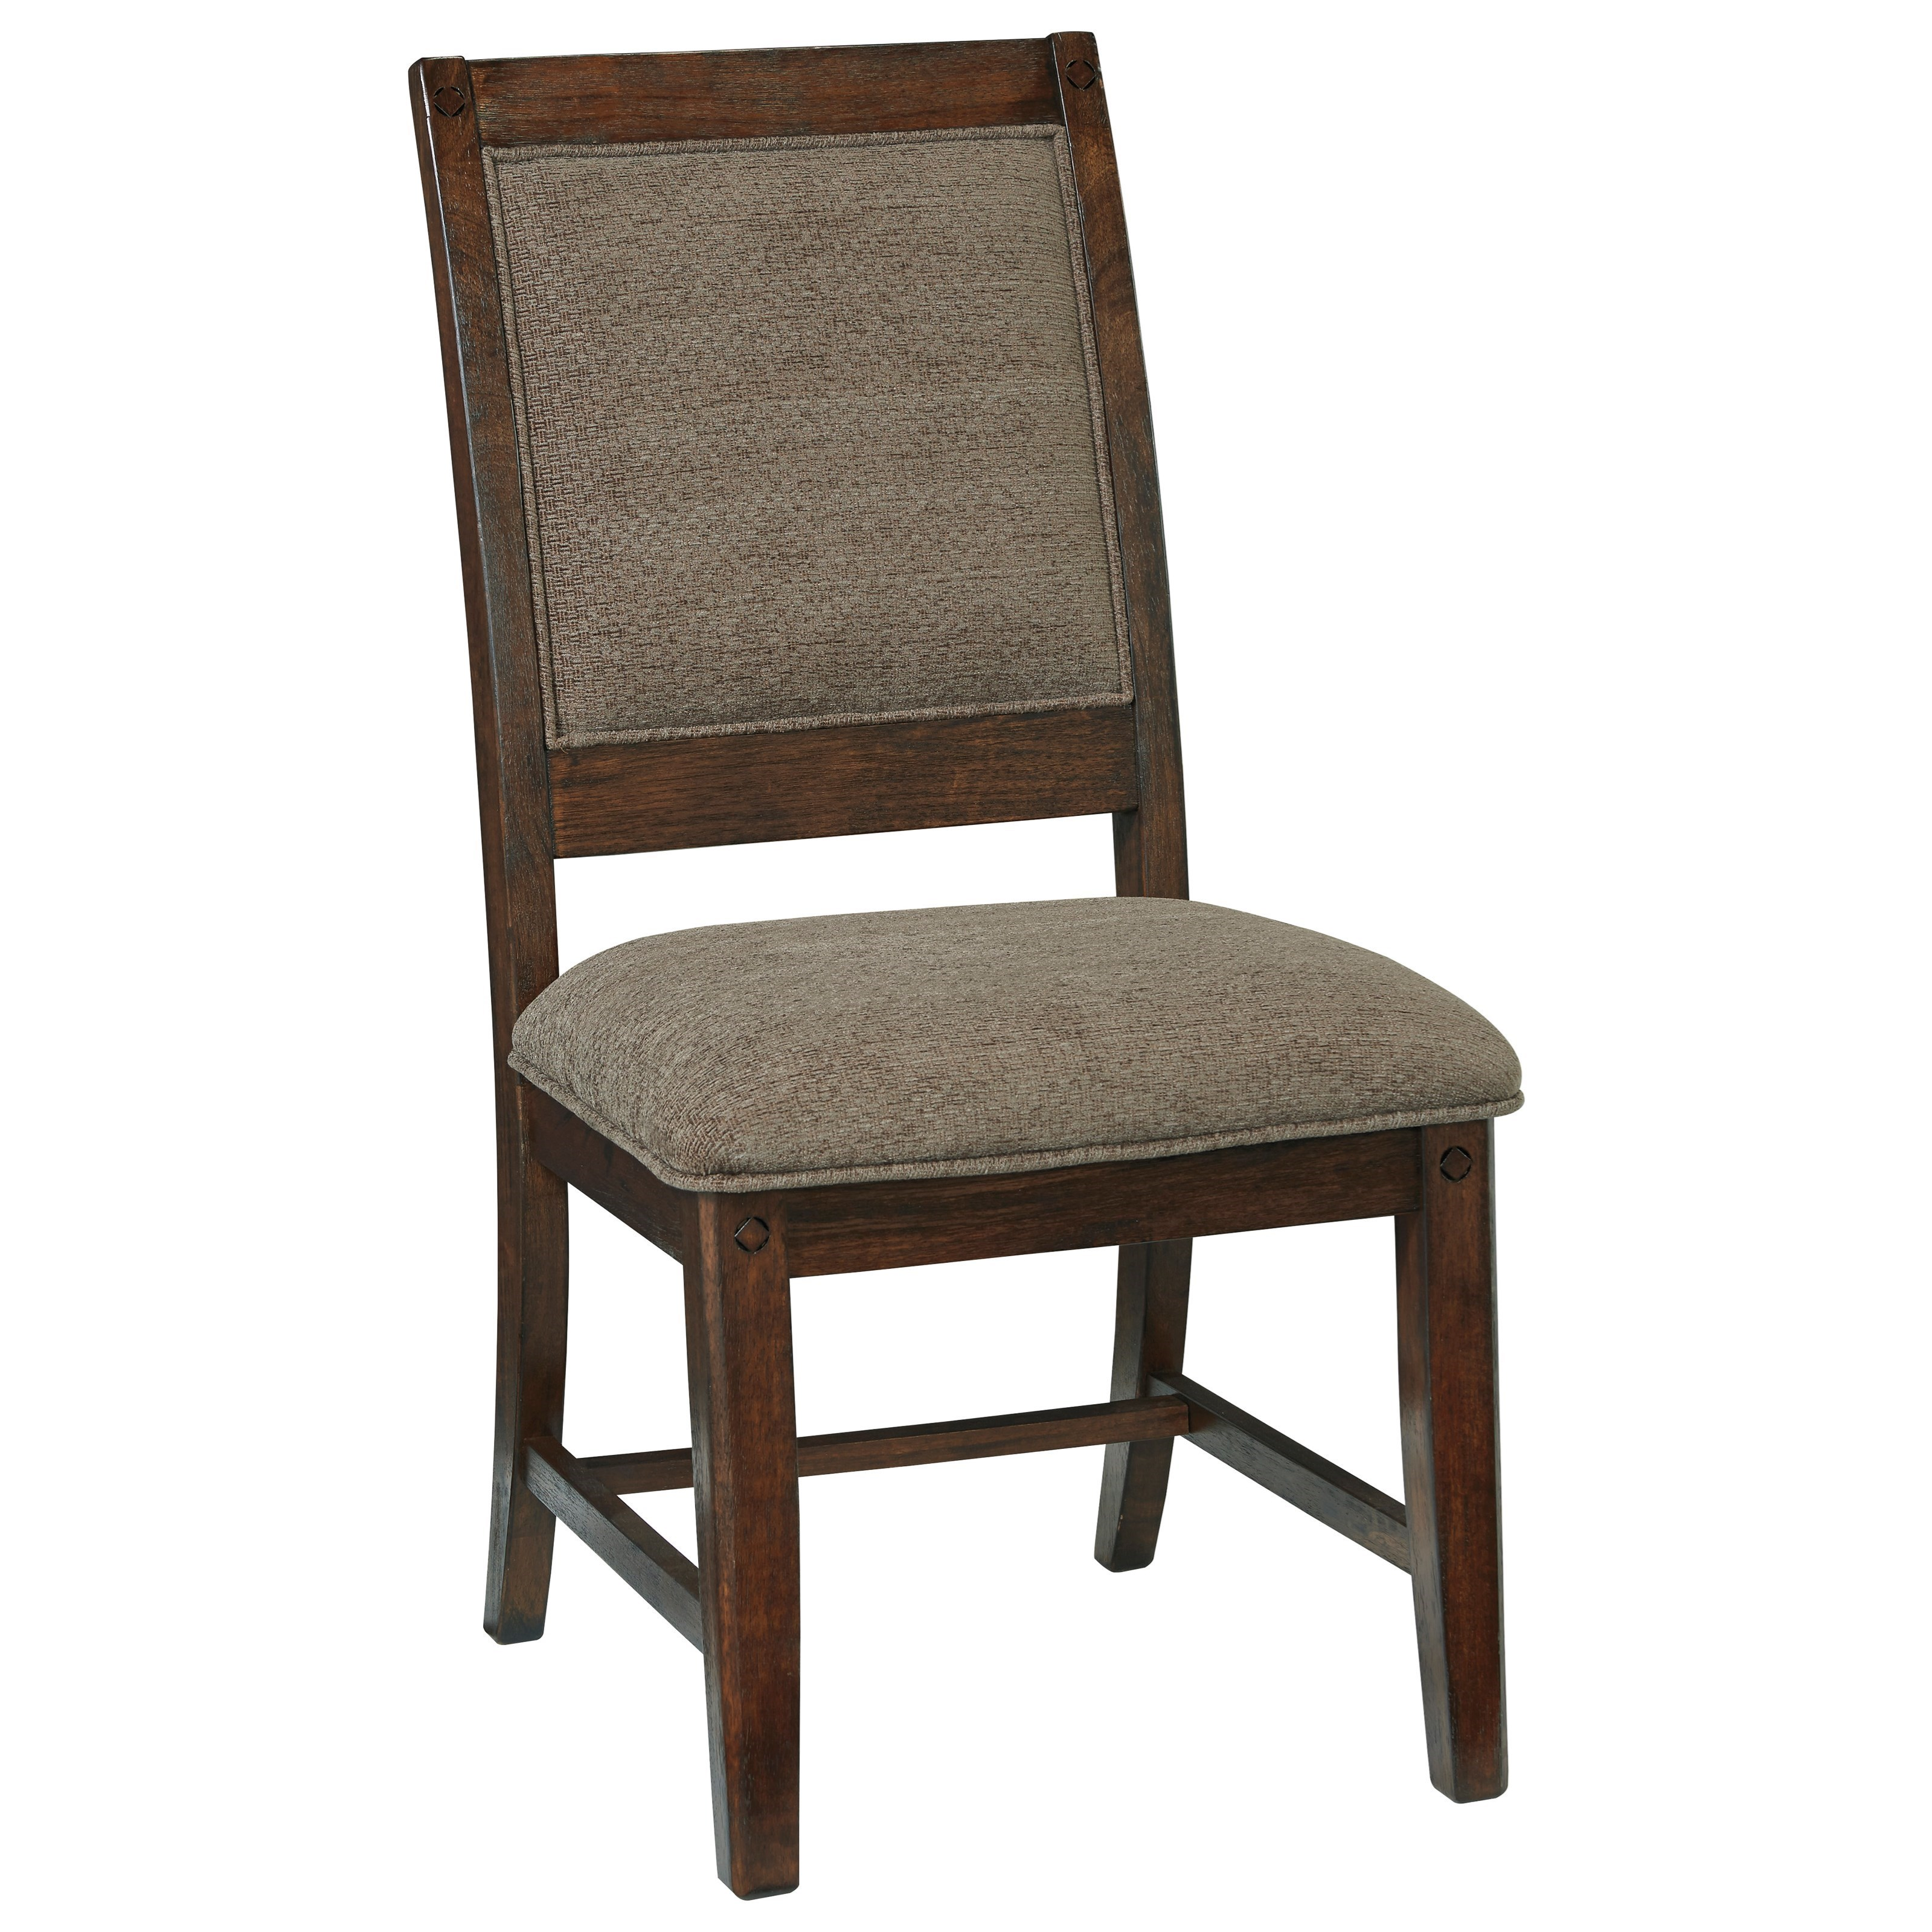 Windville Dining Upholstered Side Chair by Millennium at Sam Levitz Furniture